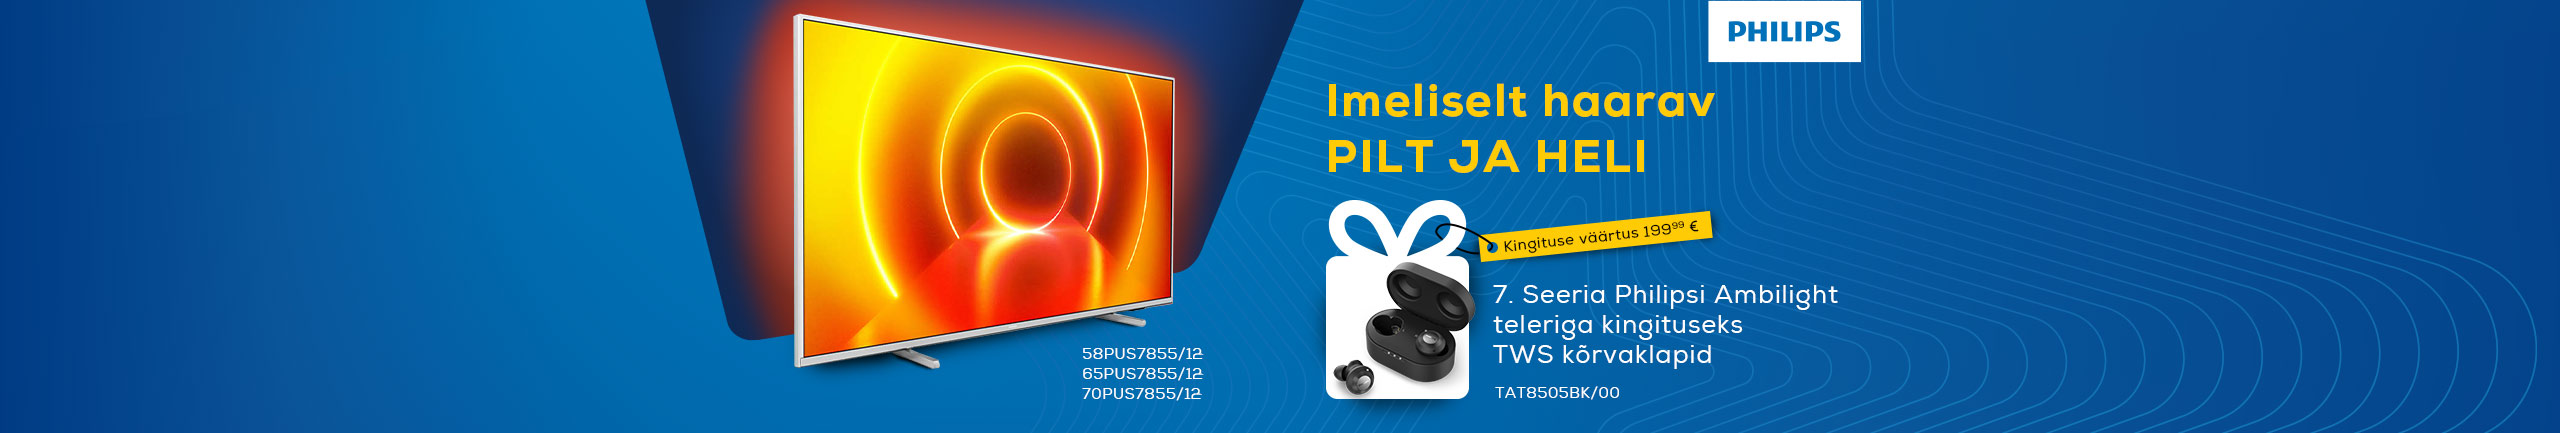 FPS Buy series 7 Ambilight TV and receive TWS headphones as a gift